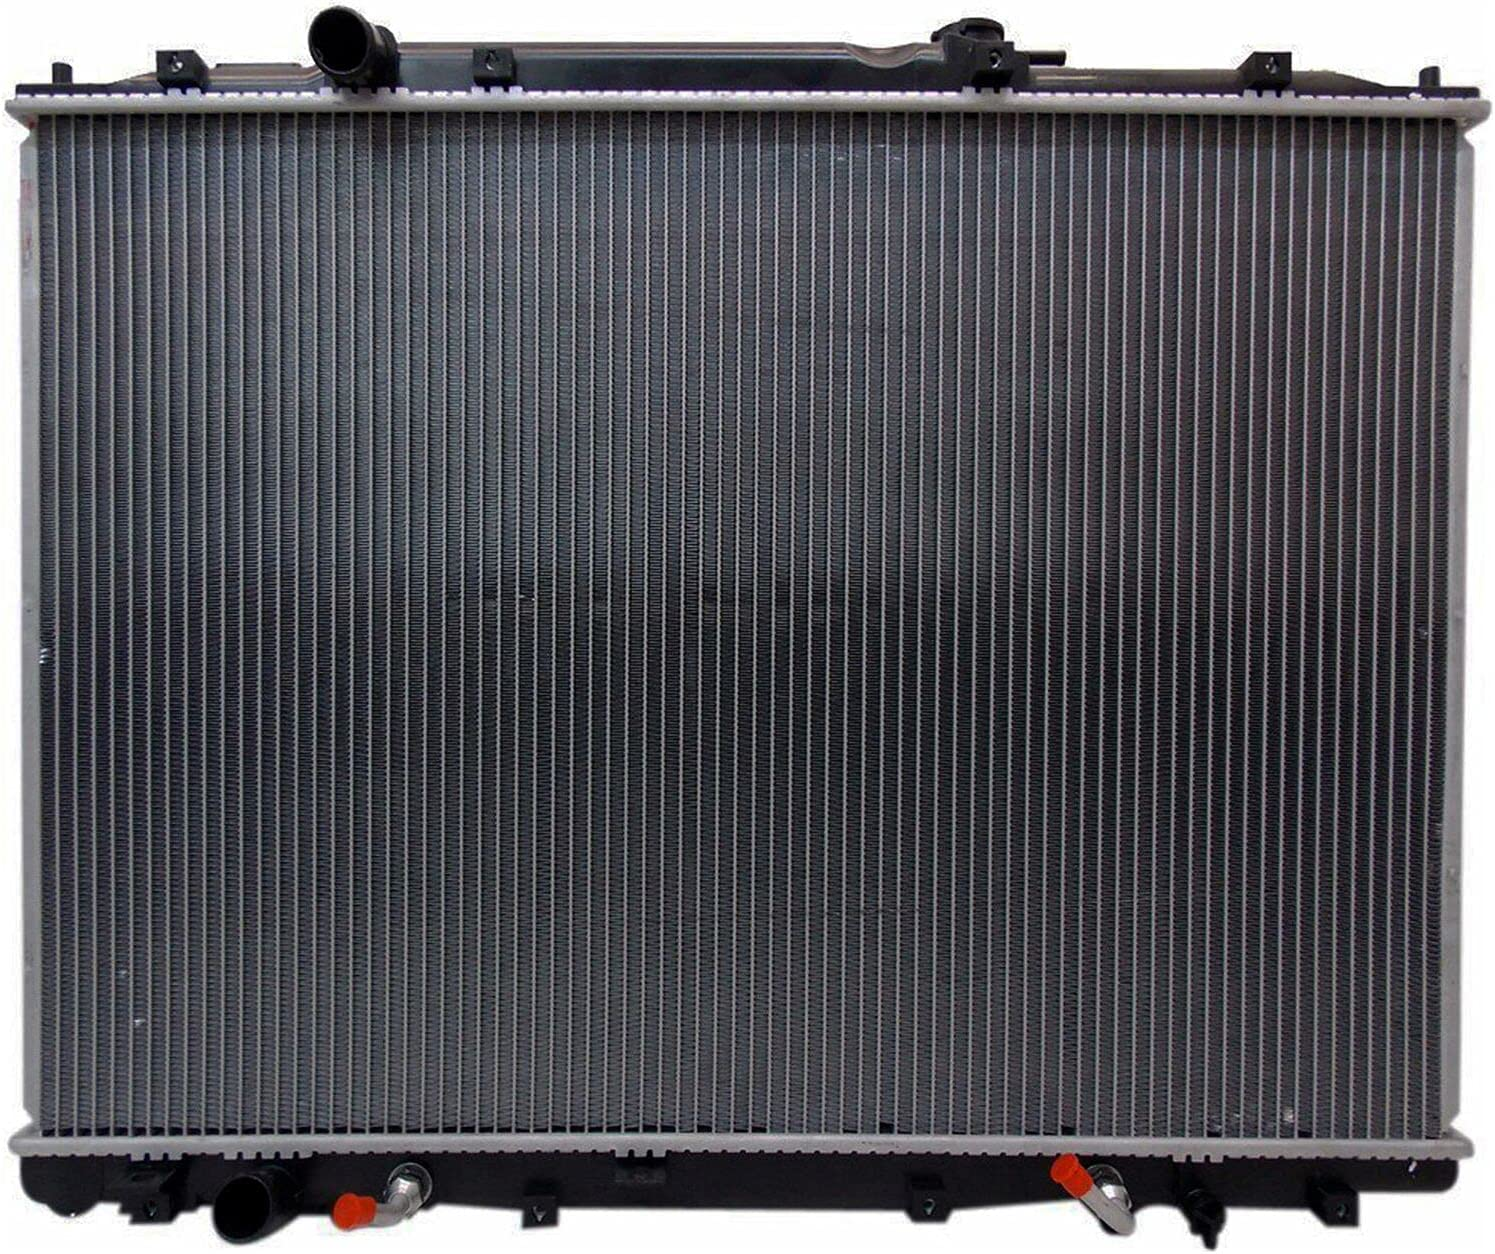 MGPRO New Replacements Radiator Compatible with EX-L R LX All items in Genuine Free Shipping the store RTL RT